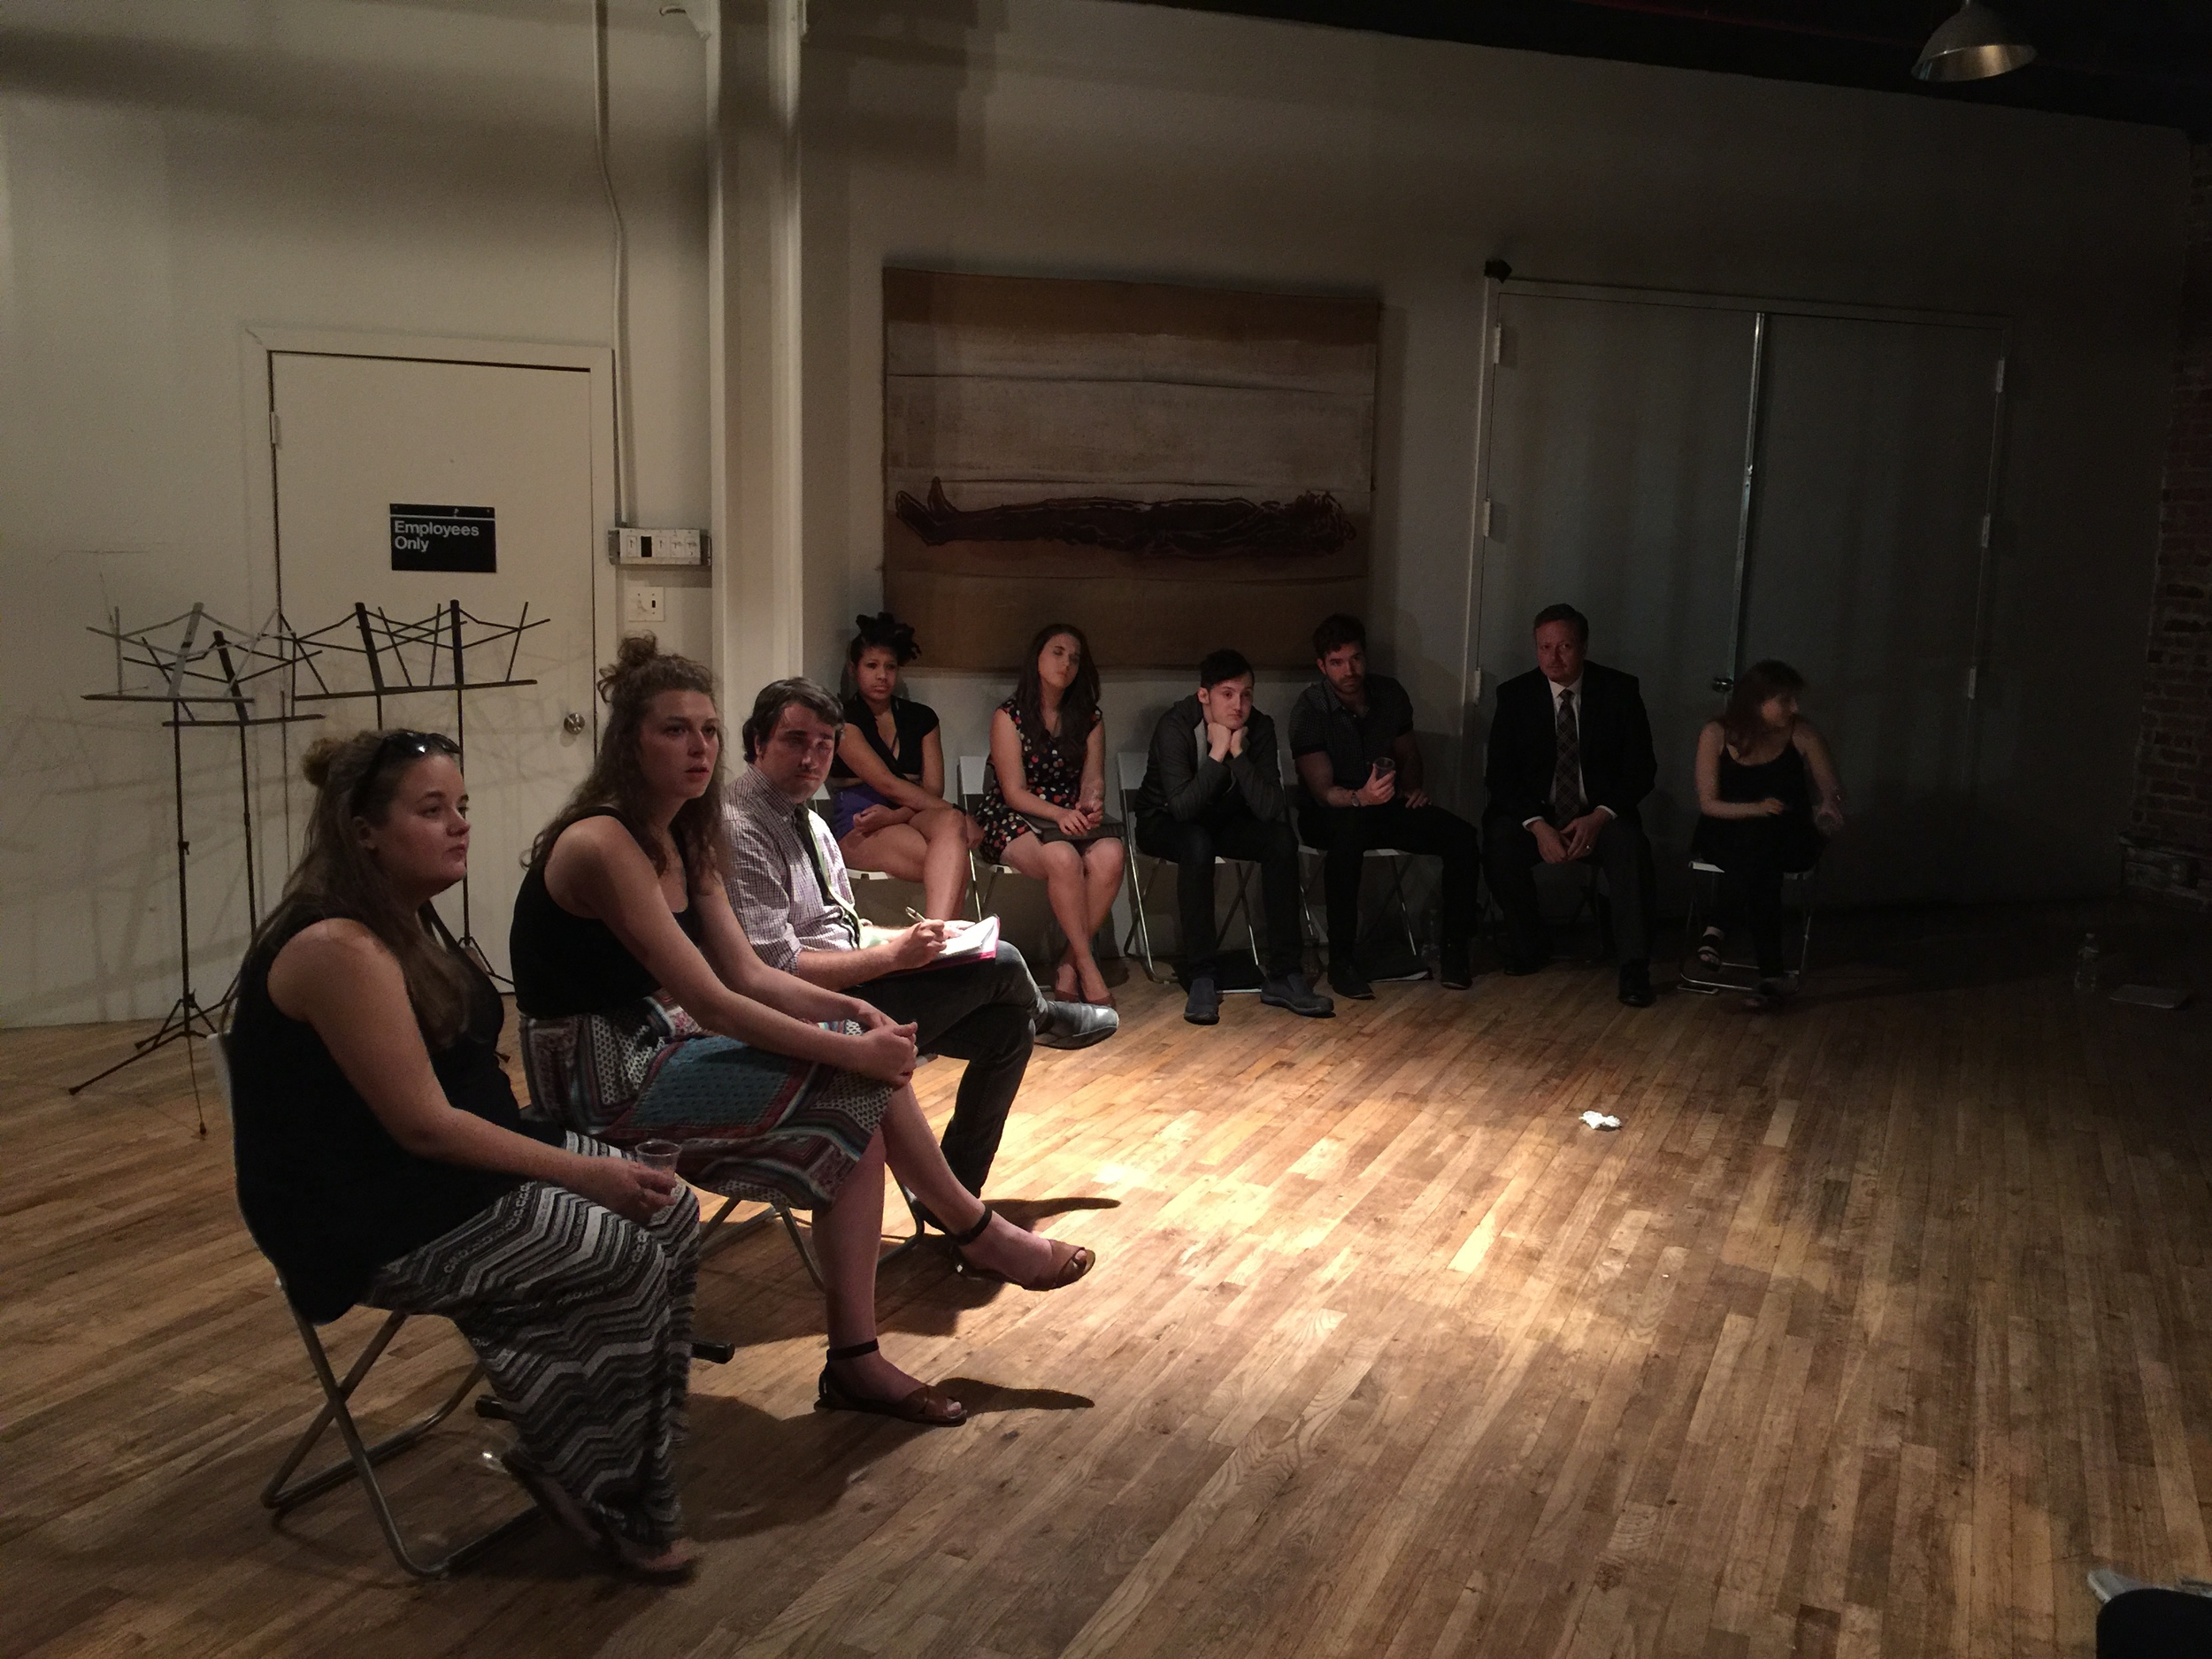 Connectivity Director,Hayley Sherwood,moderating a post-show discussion with STUPID, FAT, UGLY playwright, Dave Osmundsen, Director, Megan Milko, and the cast of the reading at Chez Bushwick.